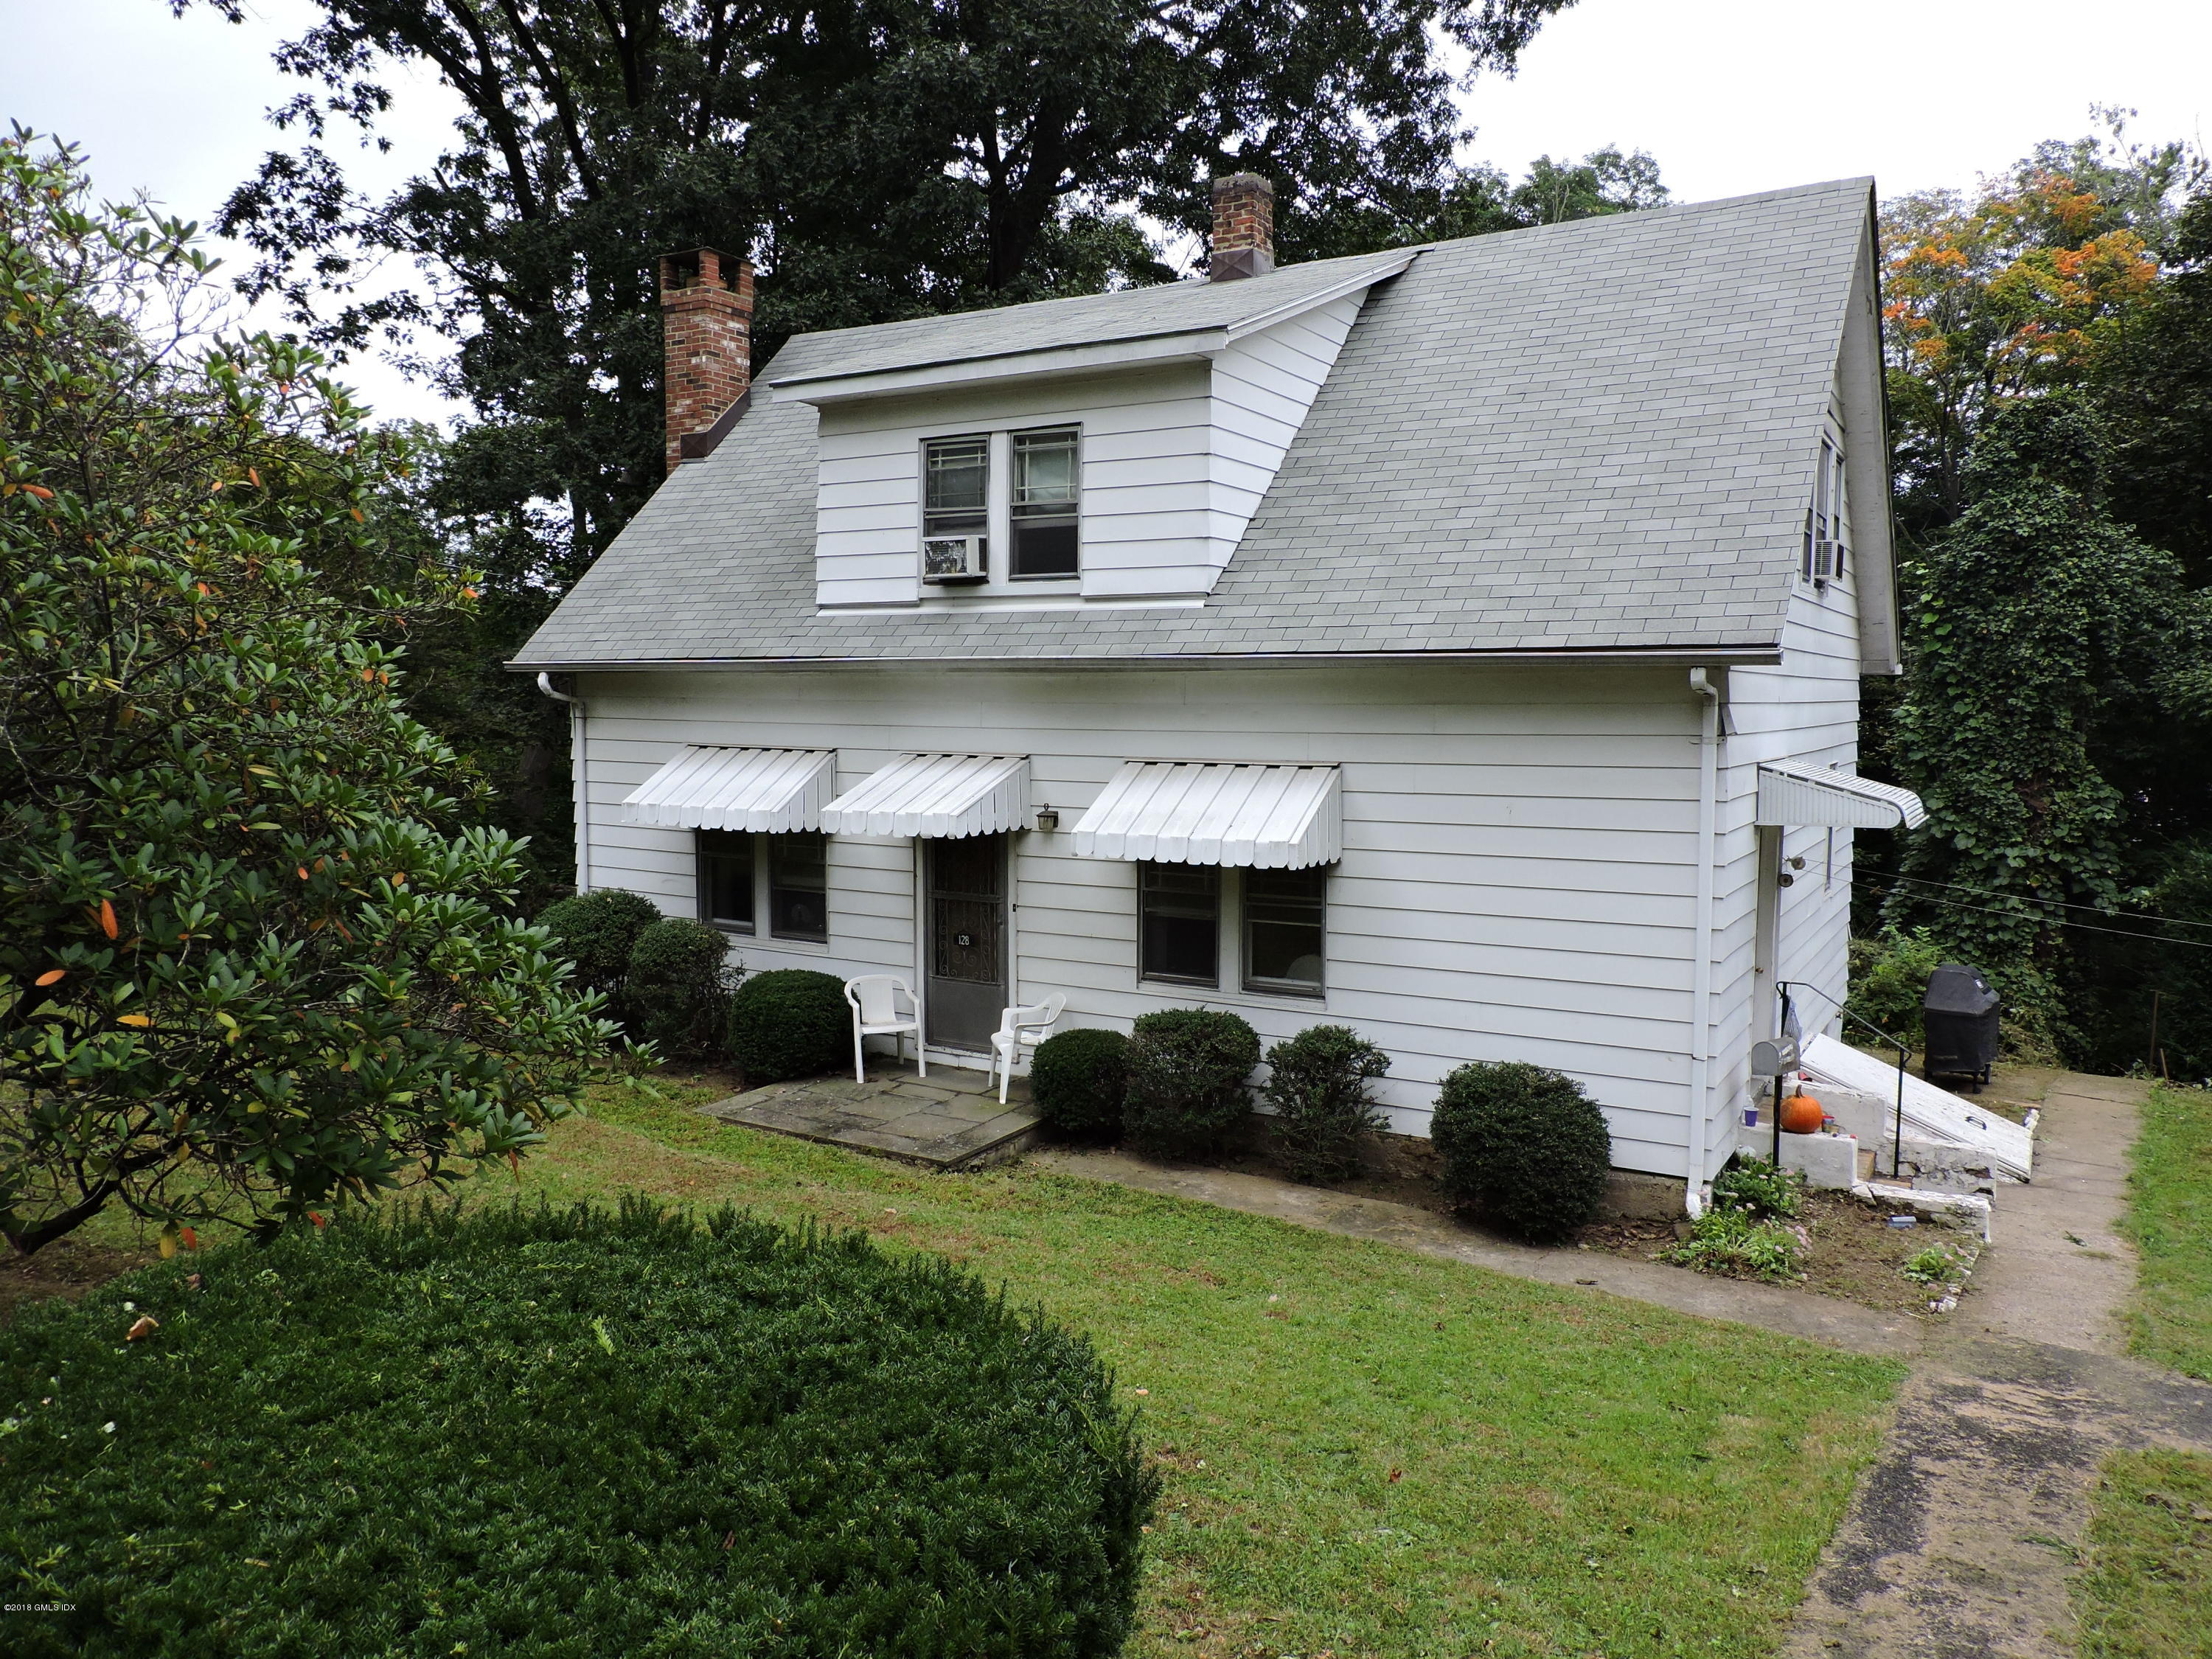 128 Halstead Avenue,Greenwich,Connecticut 06831,3 Bedrooms Bedrooms,1 BathroomBathrooms,Halstead,101963